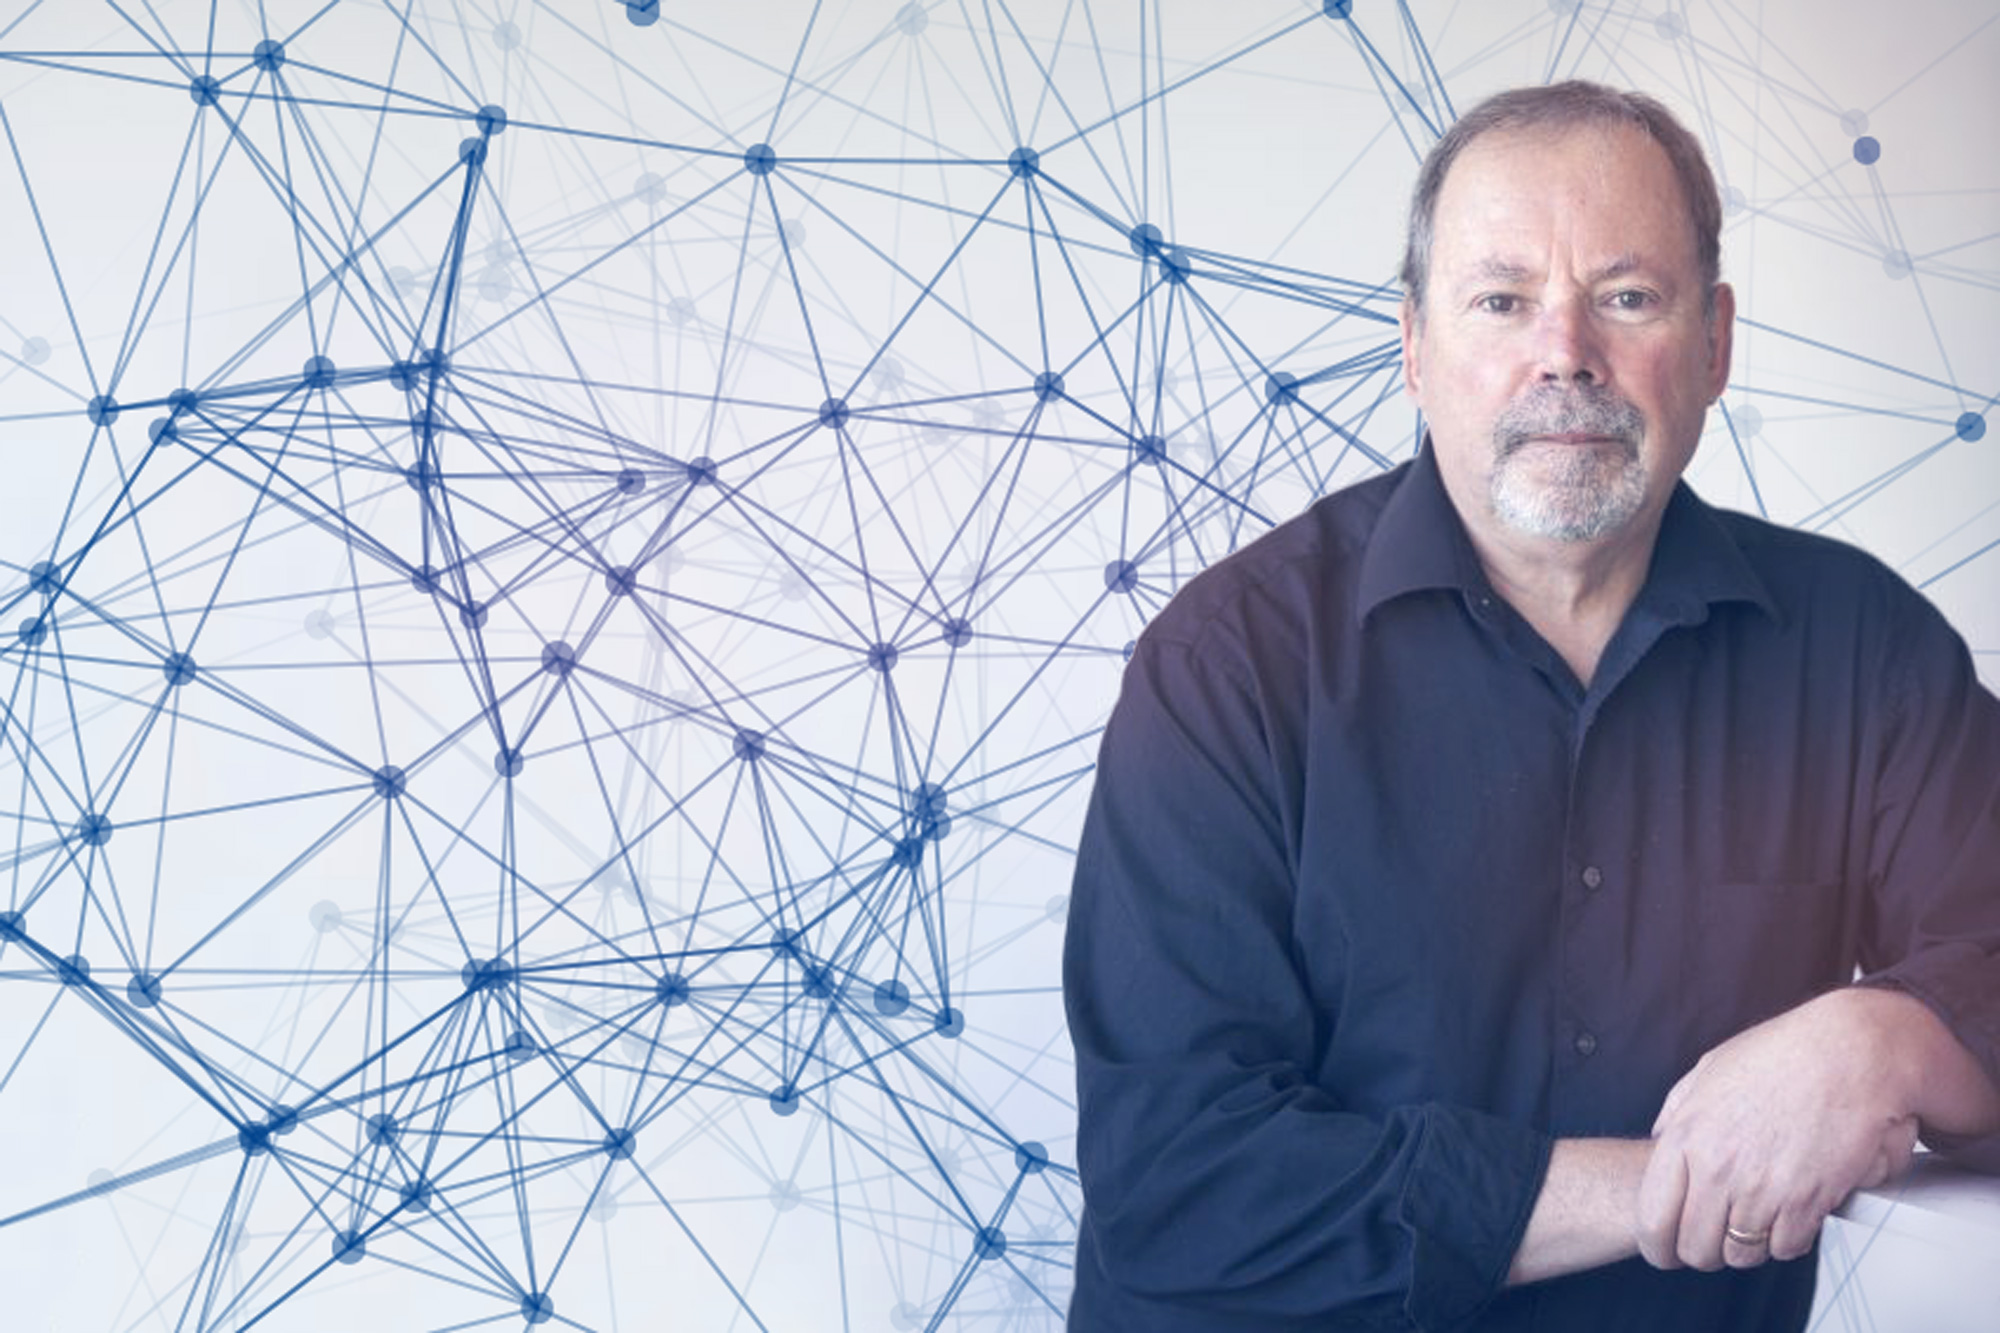 Philip E. Bourne, new director of the Data Science Institute, worked at NIH; taught at the University of California, San Diego; has founded four companies; and published more than 300 papers and five books.